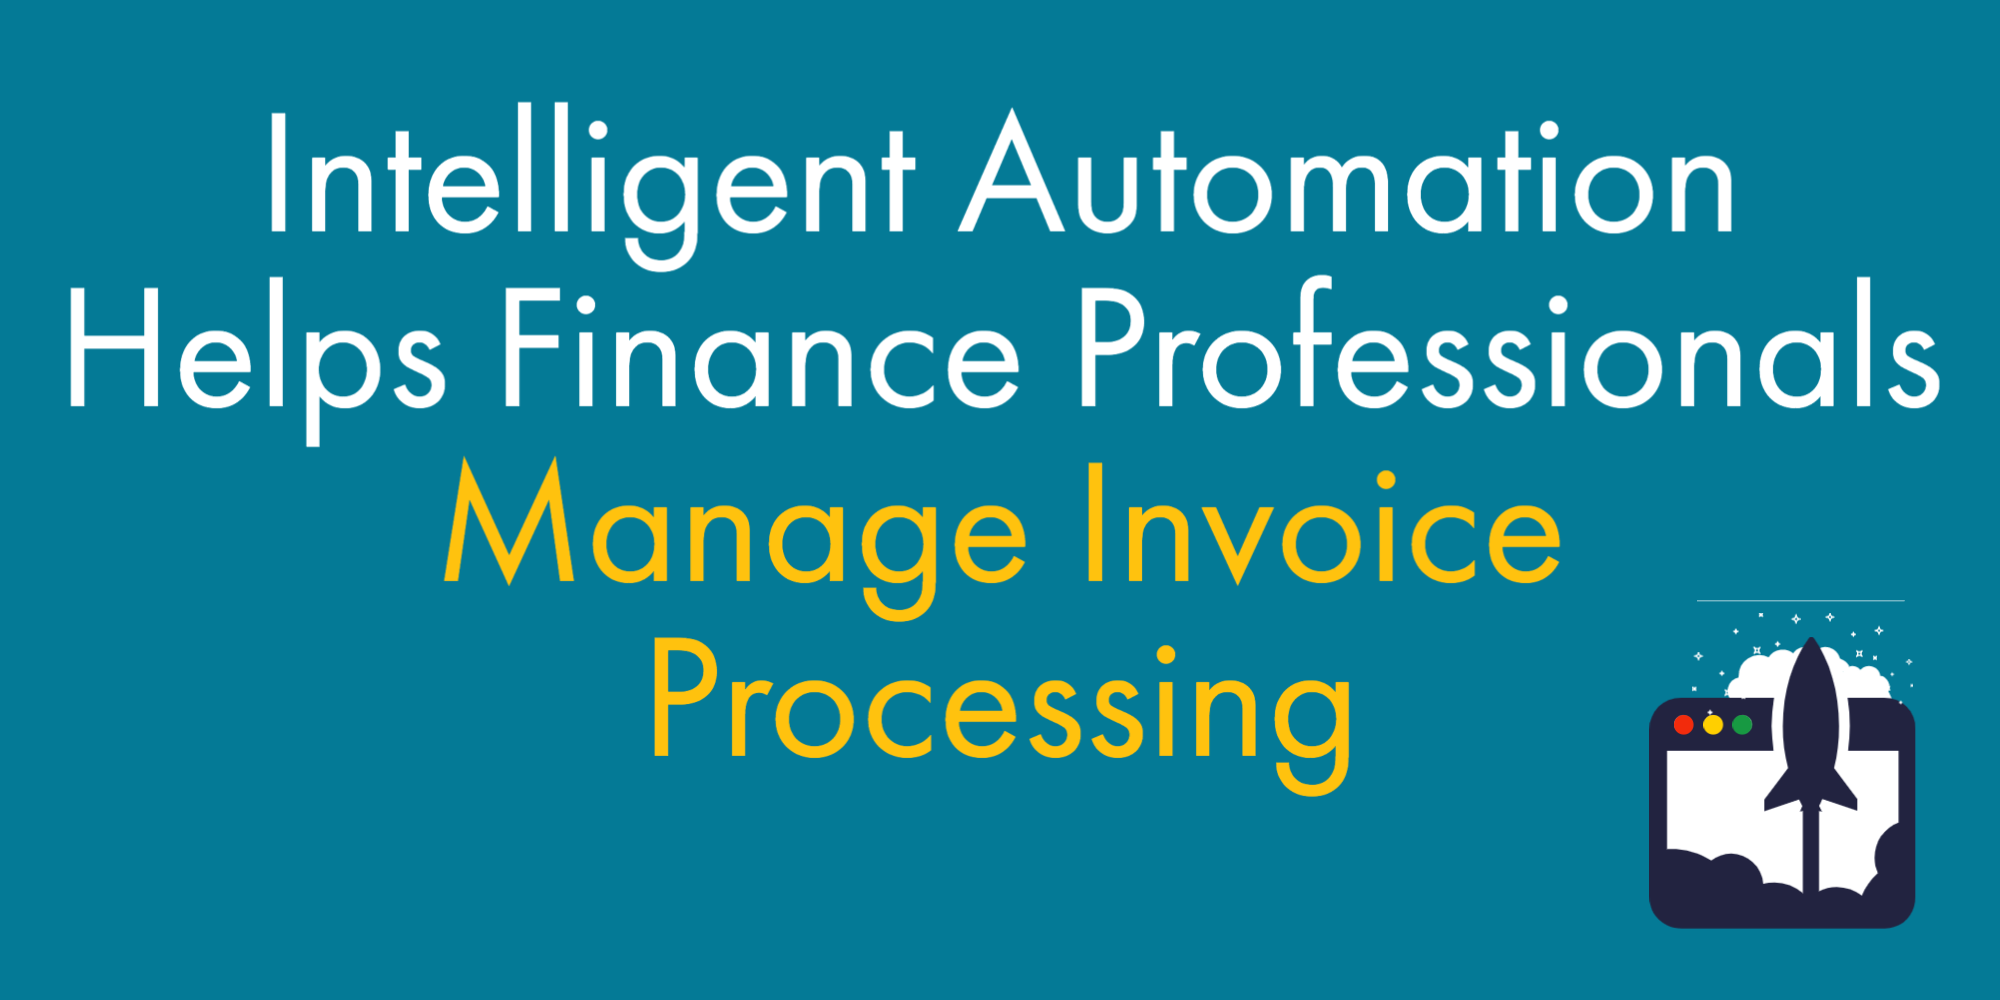 Intelligent Automation Helps Finance Professionals Reach Their Goals